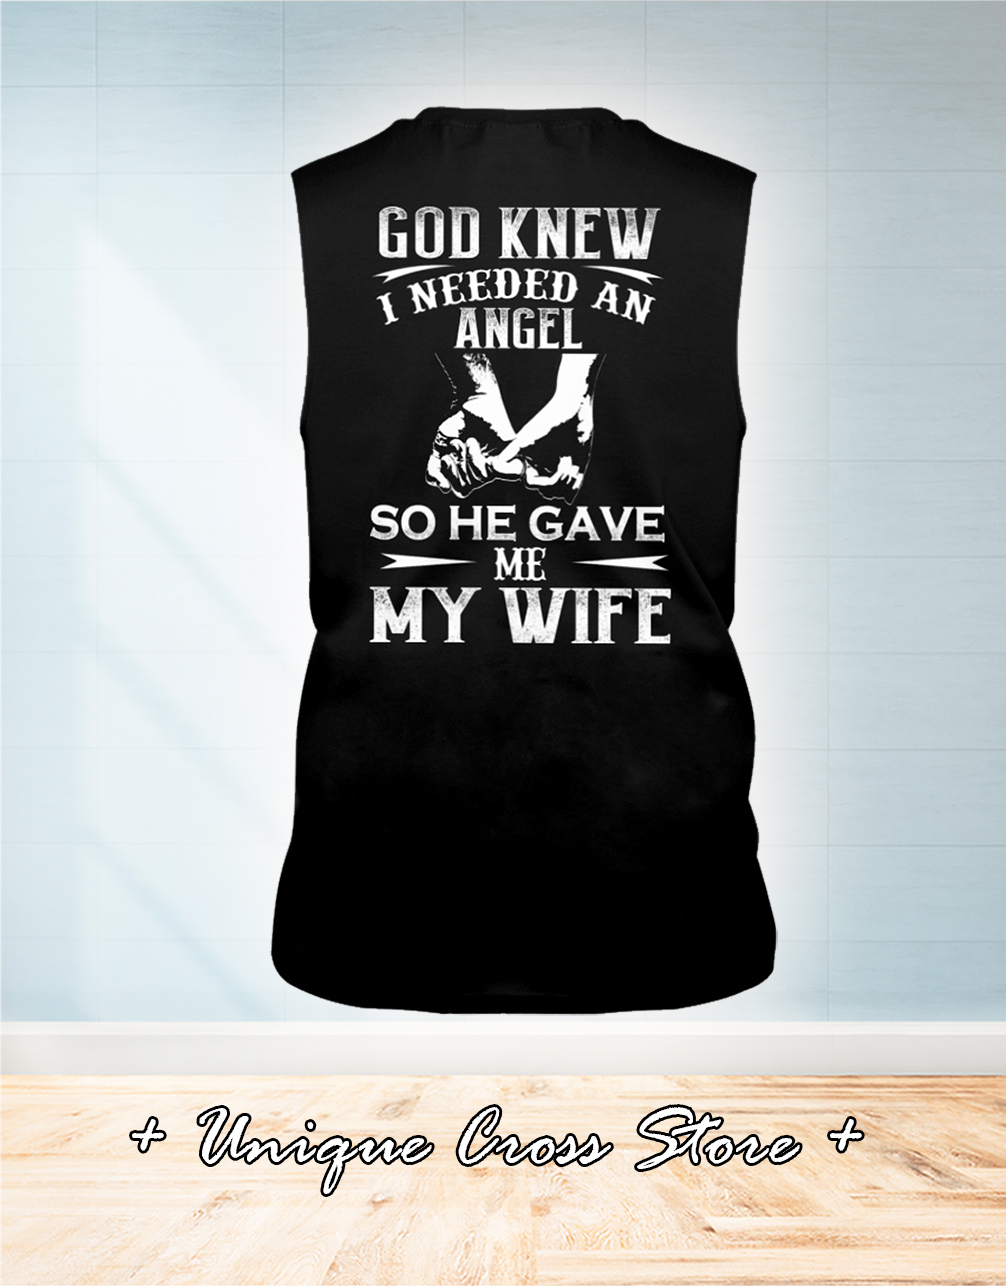 God Knew I Needed An Angel So He Gave Me My Wife tank top